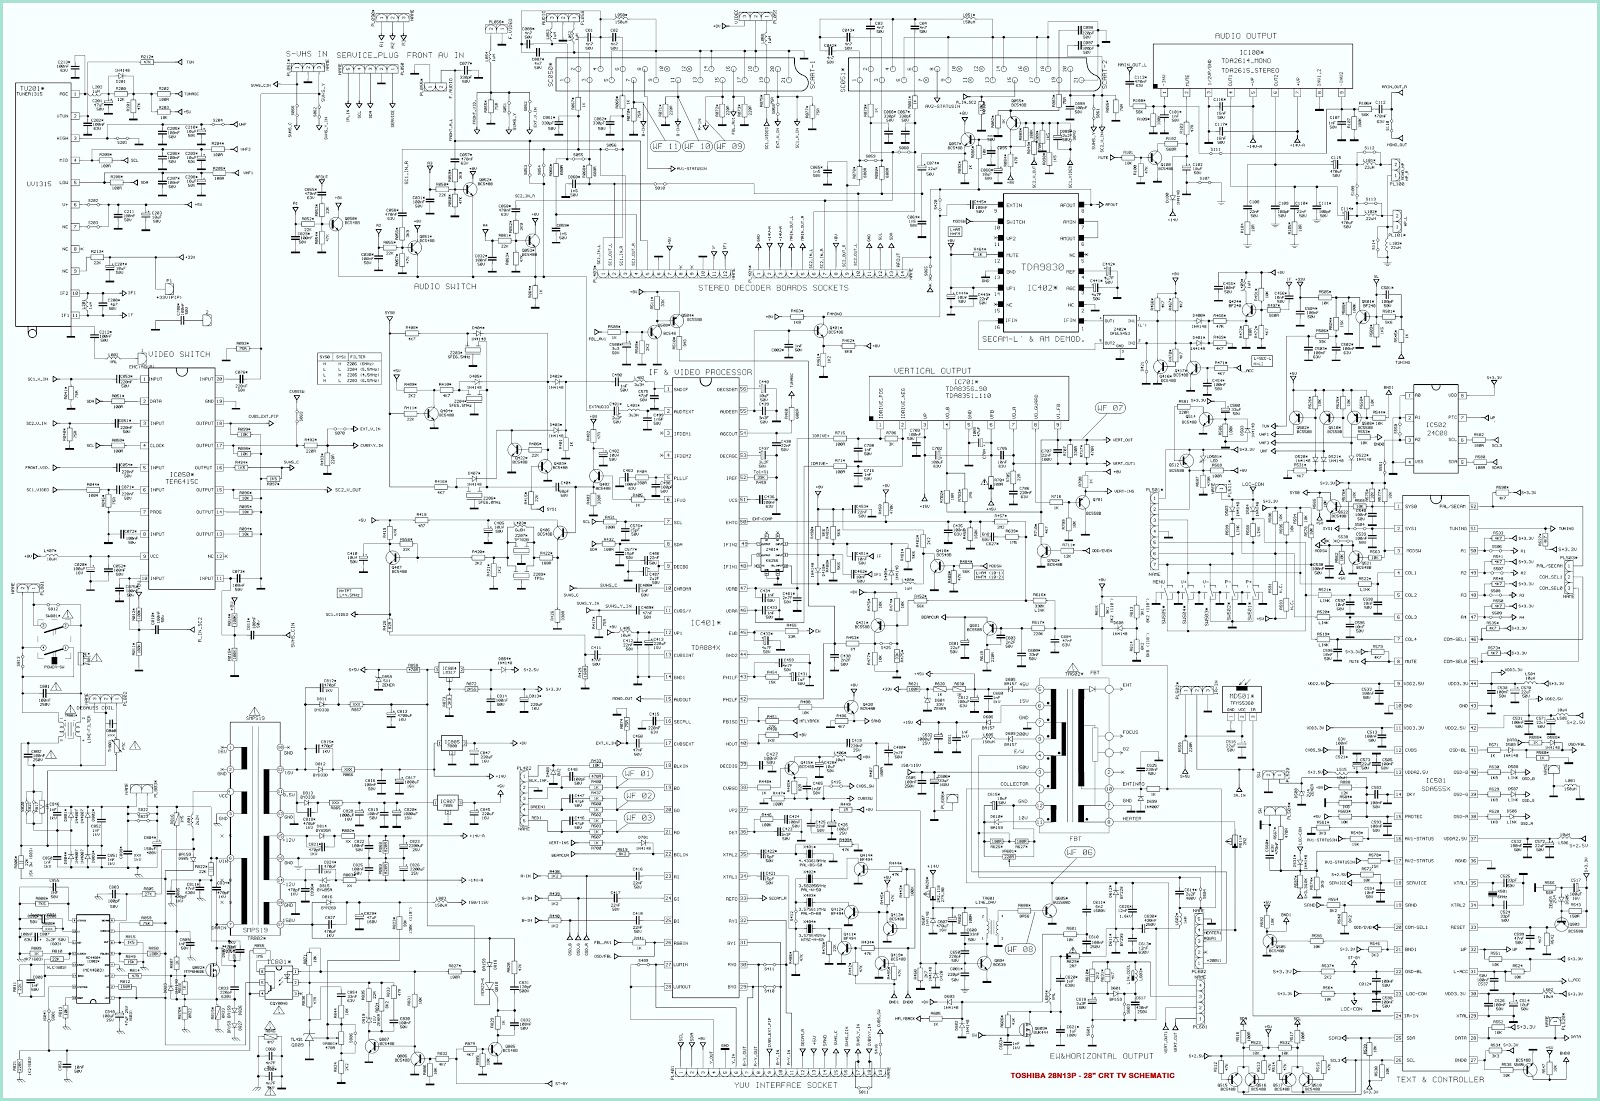 small resolution of toshiba 28n13p u2013 28 inch crt tv circuit diagram schematic diagramsclick on the schematic to